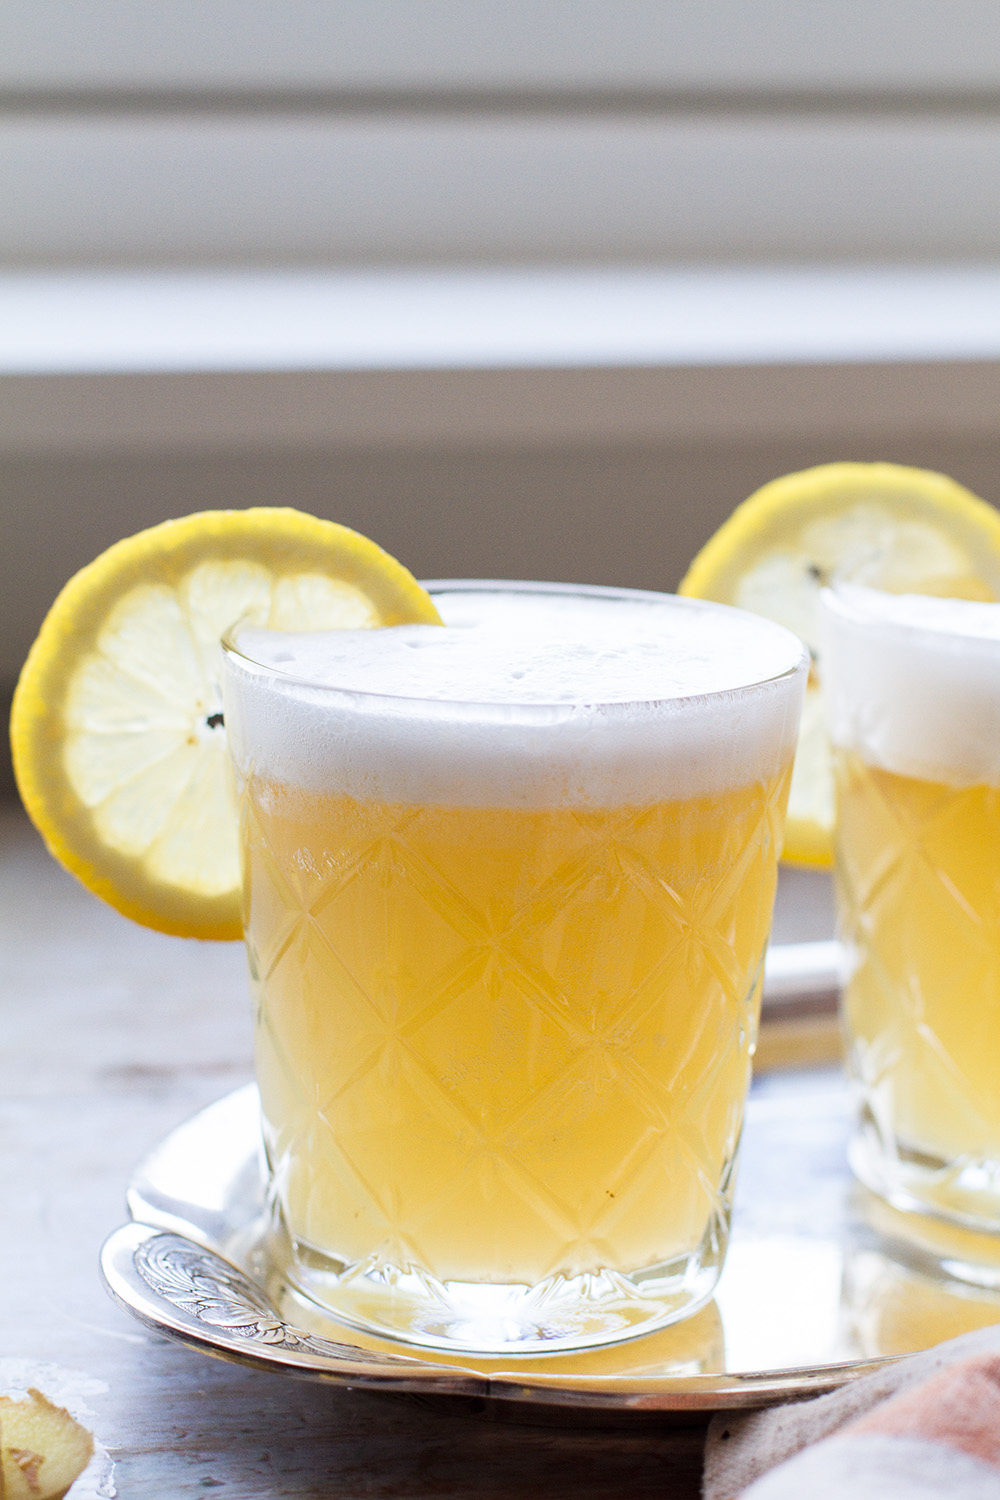 A glass with whiskey sour with backlight to show the yellow color of the drink.